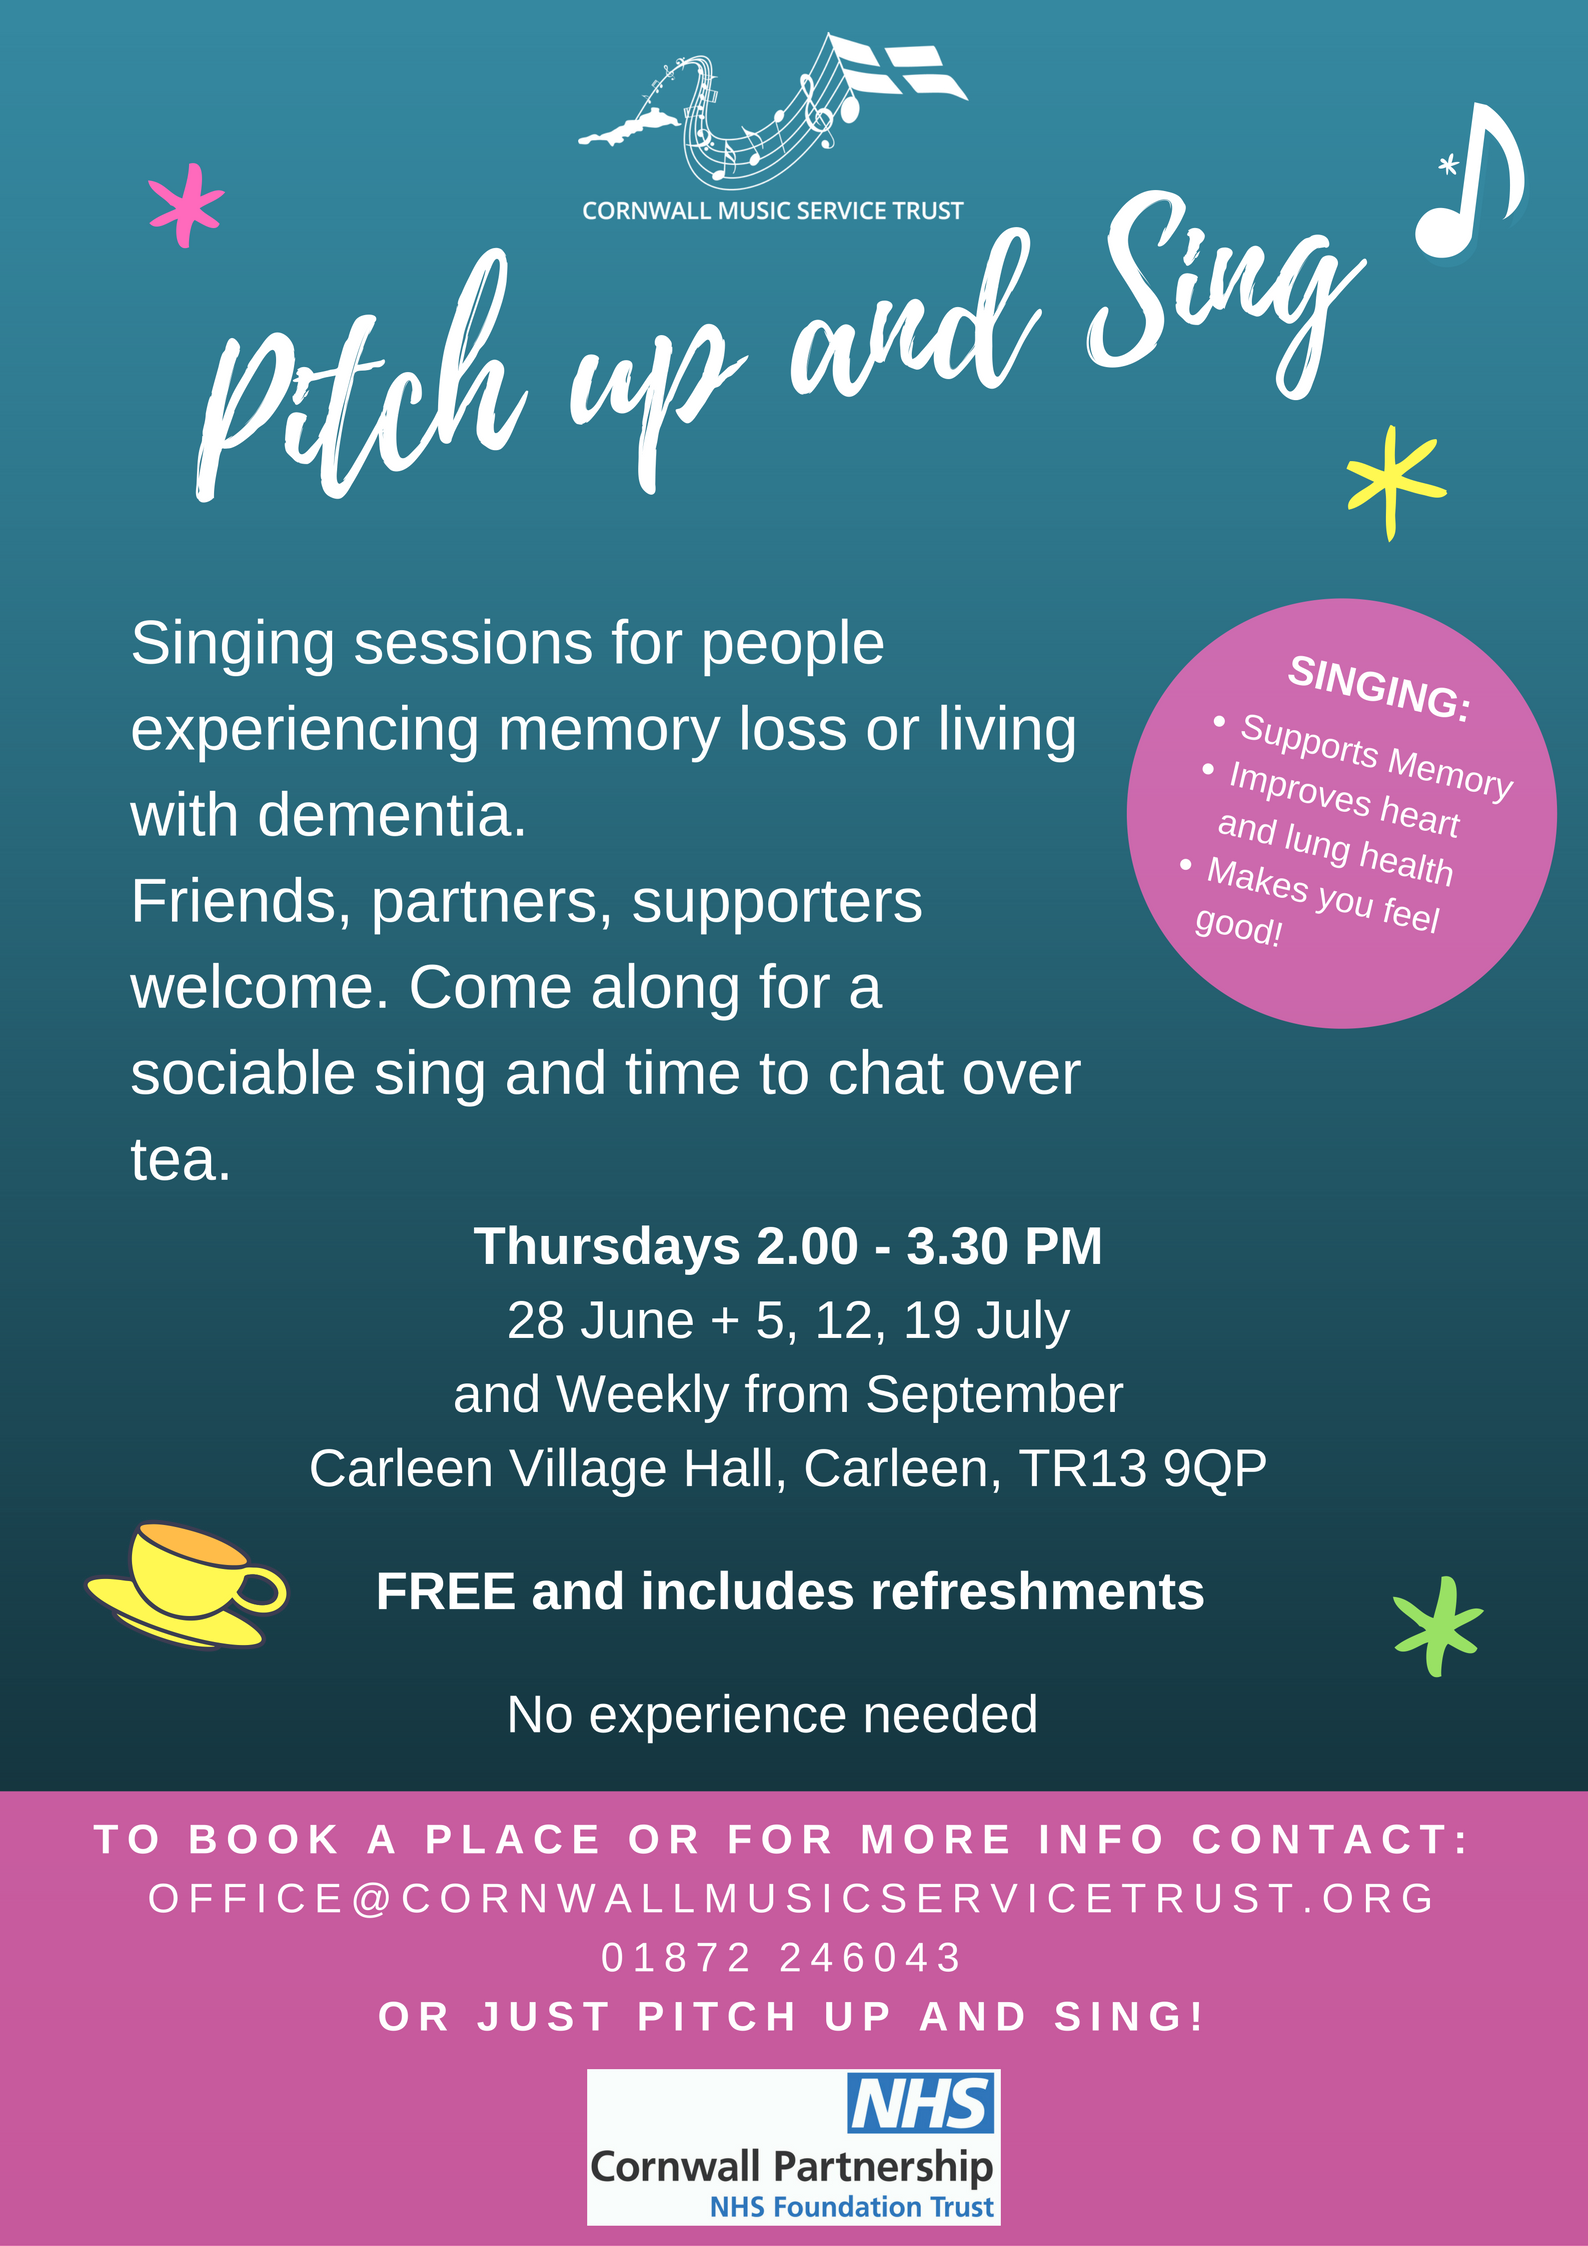 Pitch up and sing - Final IMAGE.png